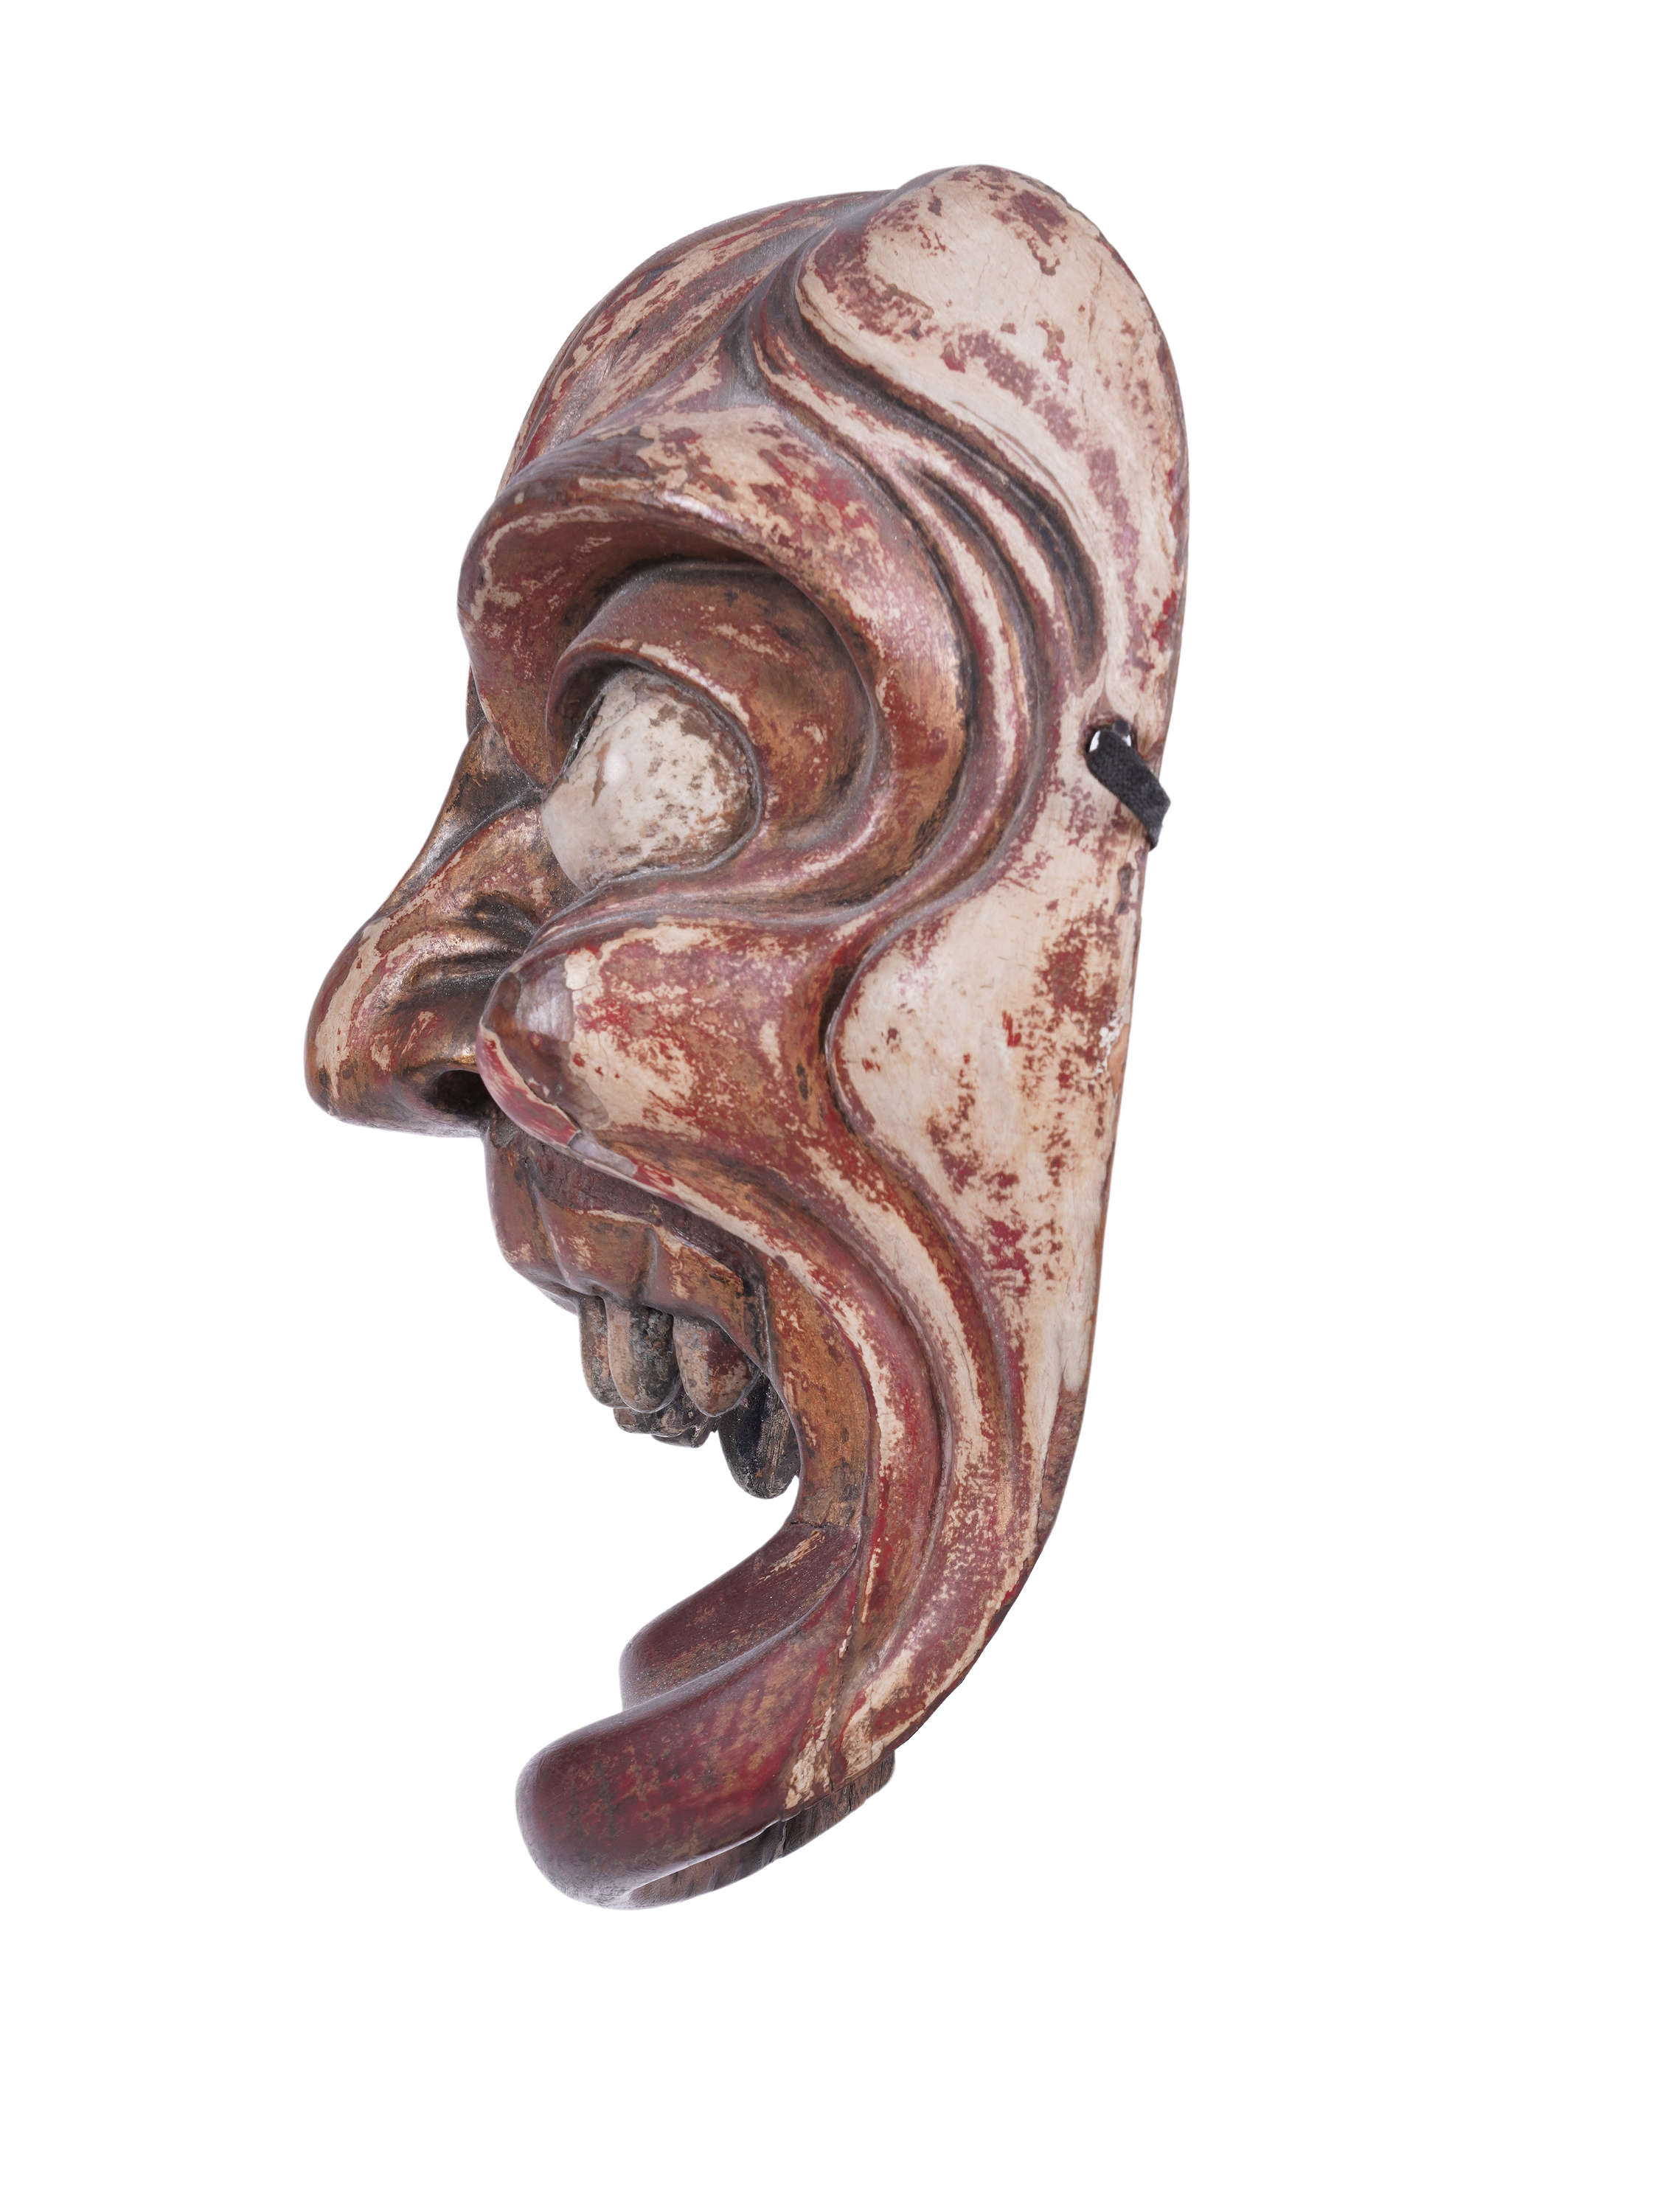 .A LACQUERED 'TOOTHLESS' WOODEN MASK Japan, 19th century H: 22 cm - w: 16 cm Provenance: A curated - Image 2 of 4